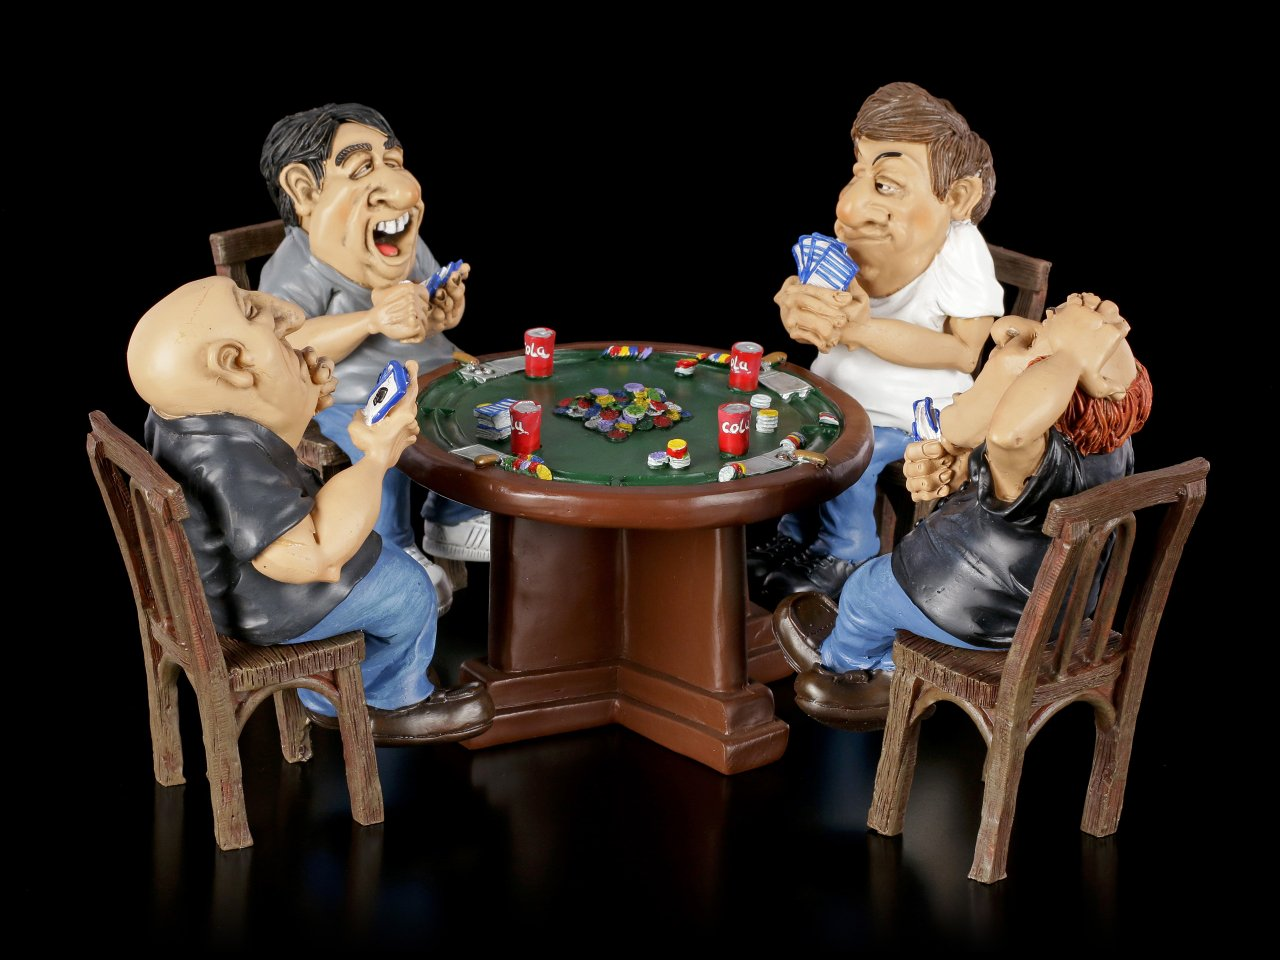 Funny Sports Figurines - Poker Night